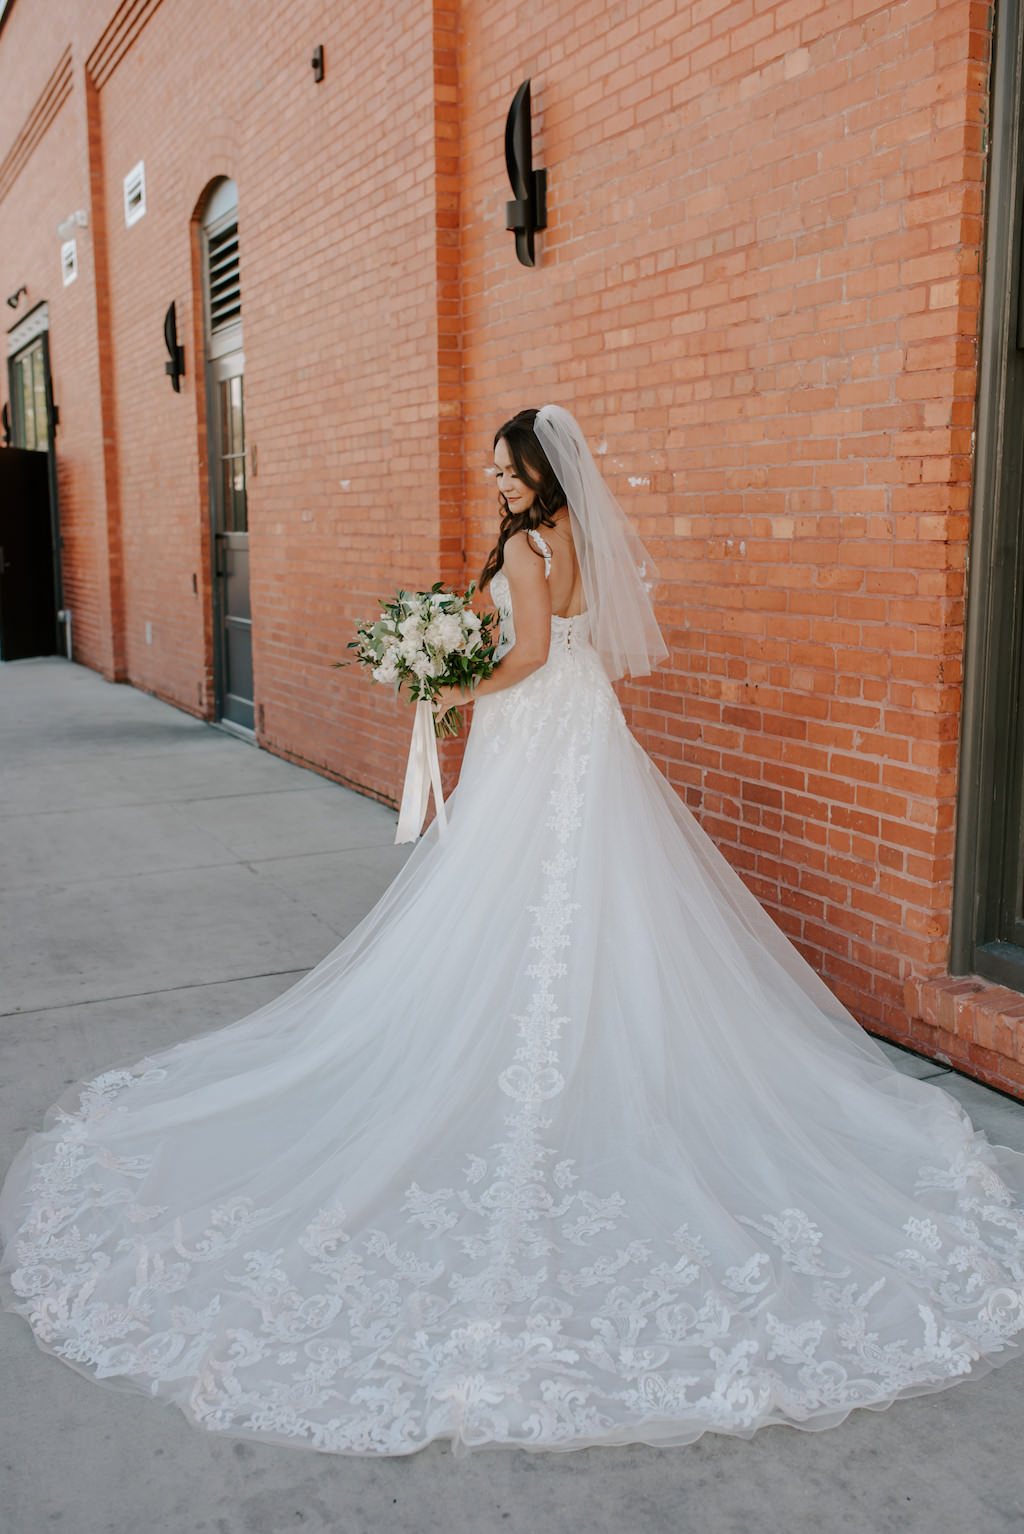 Romantic, Modern Florida Bride in White Essence of Australia Ballgown Style Wedding Dress with Lace Detailing, Red Exposed Brick Wall at Armature Works, The Gathering in Tampa Heights